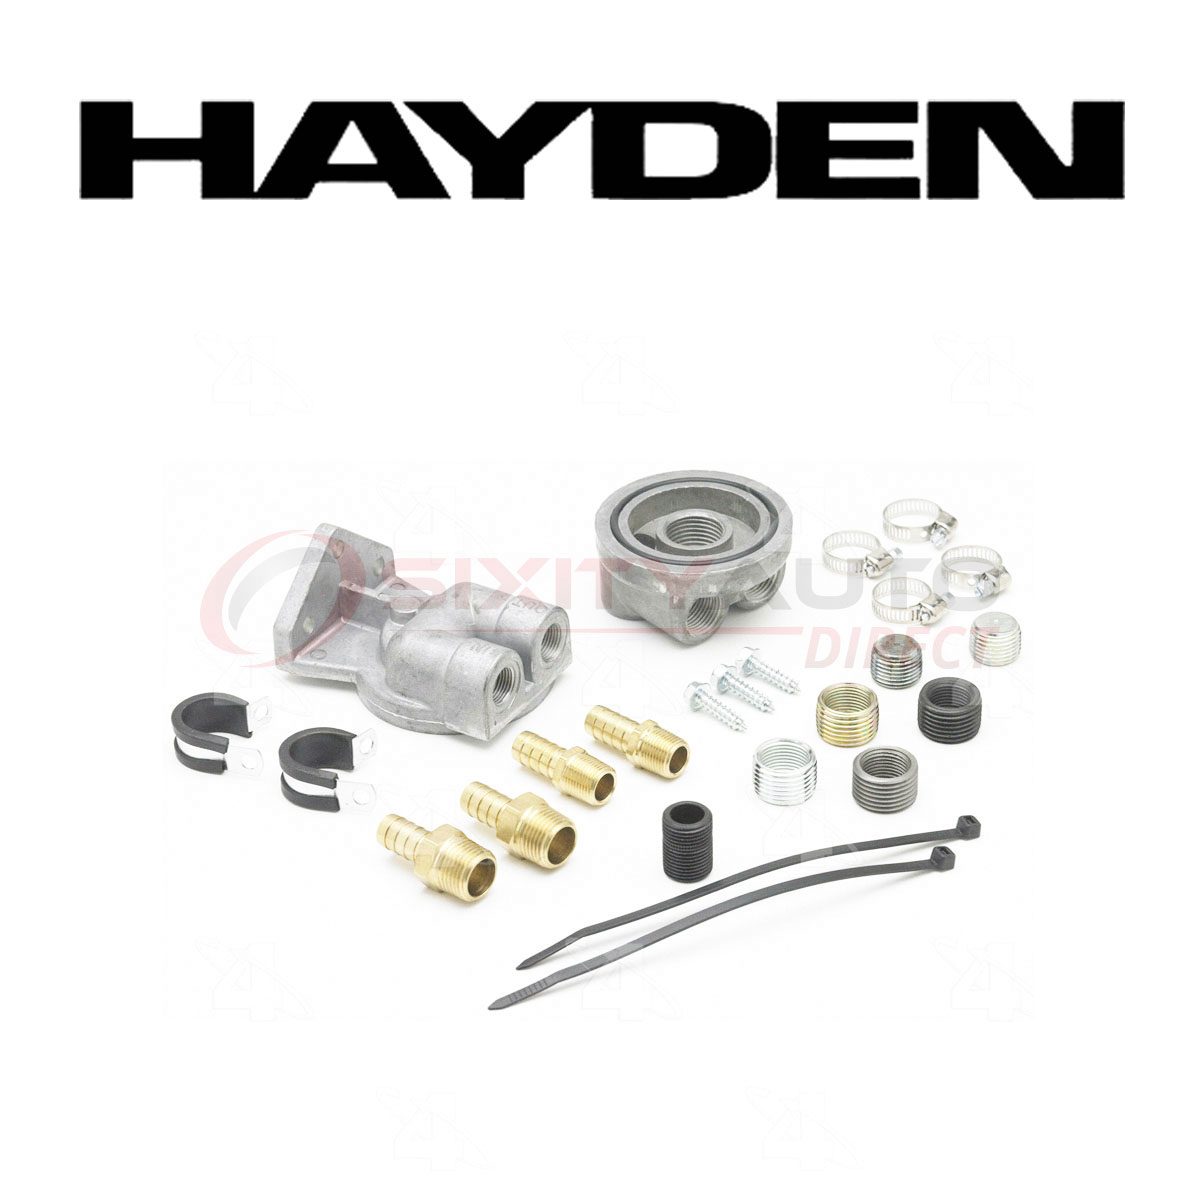 Hayden Oil Filter Remote Mounting Kit for 2004-2006 Toyota